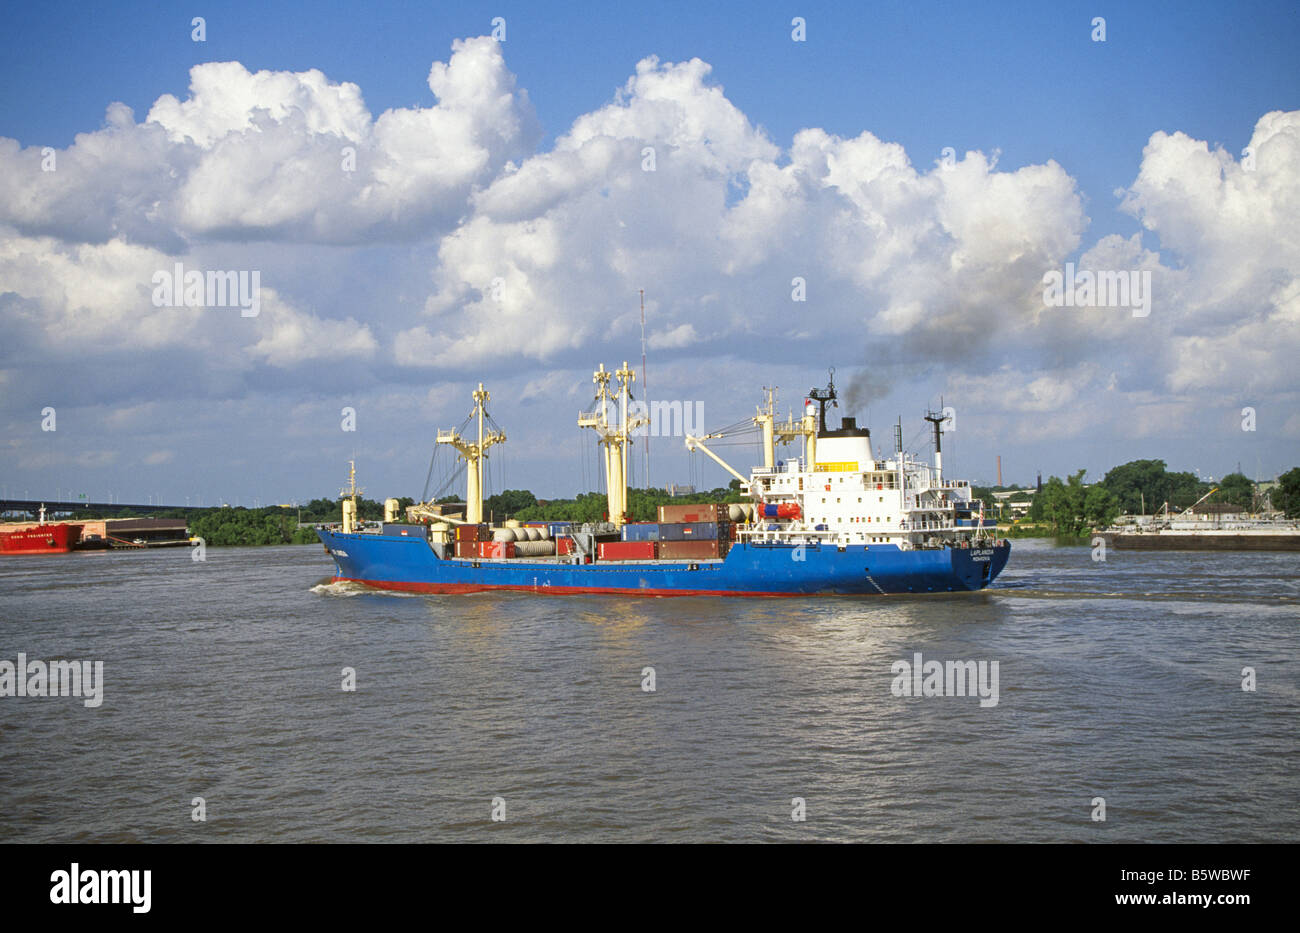 A small freighter cargo carrying ship on the Mississippi River near St Louis, Missouri. Stock Photo